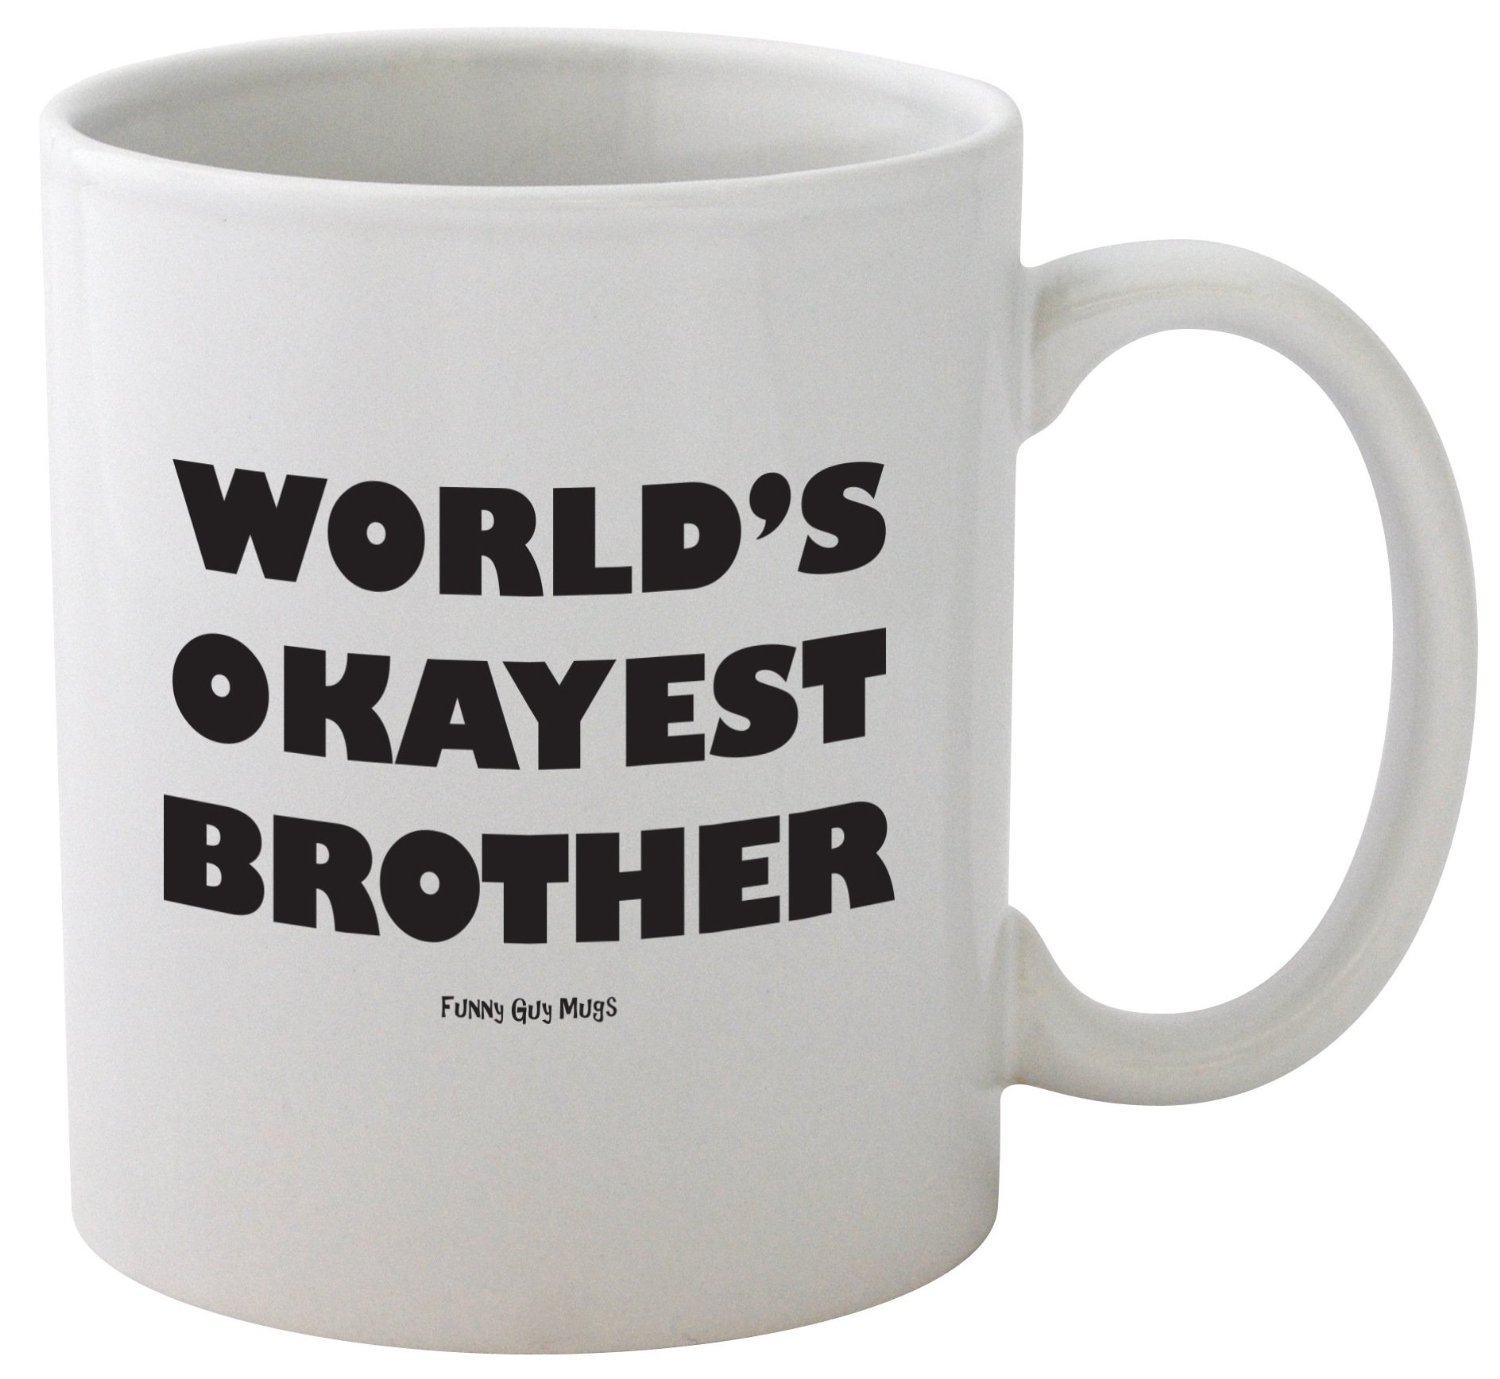 Okayest Brother Mug